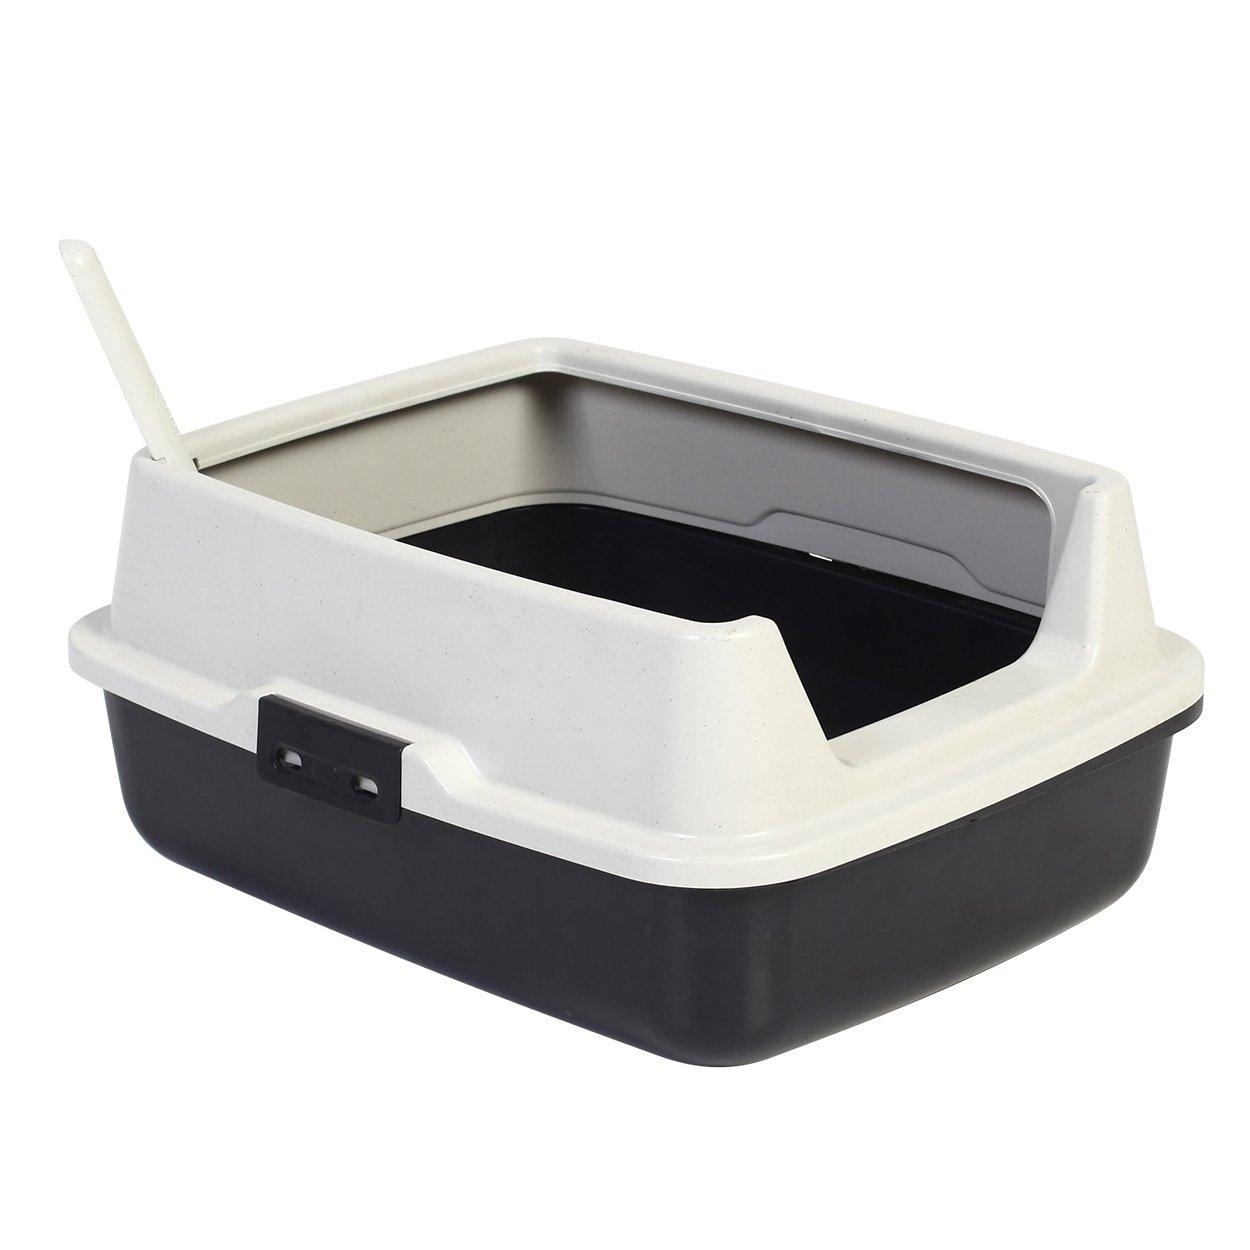 Animal Treasures Deluxe Cat Litter Pan with High Rim